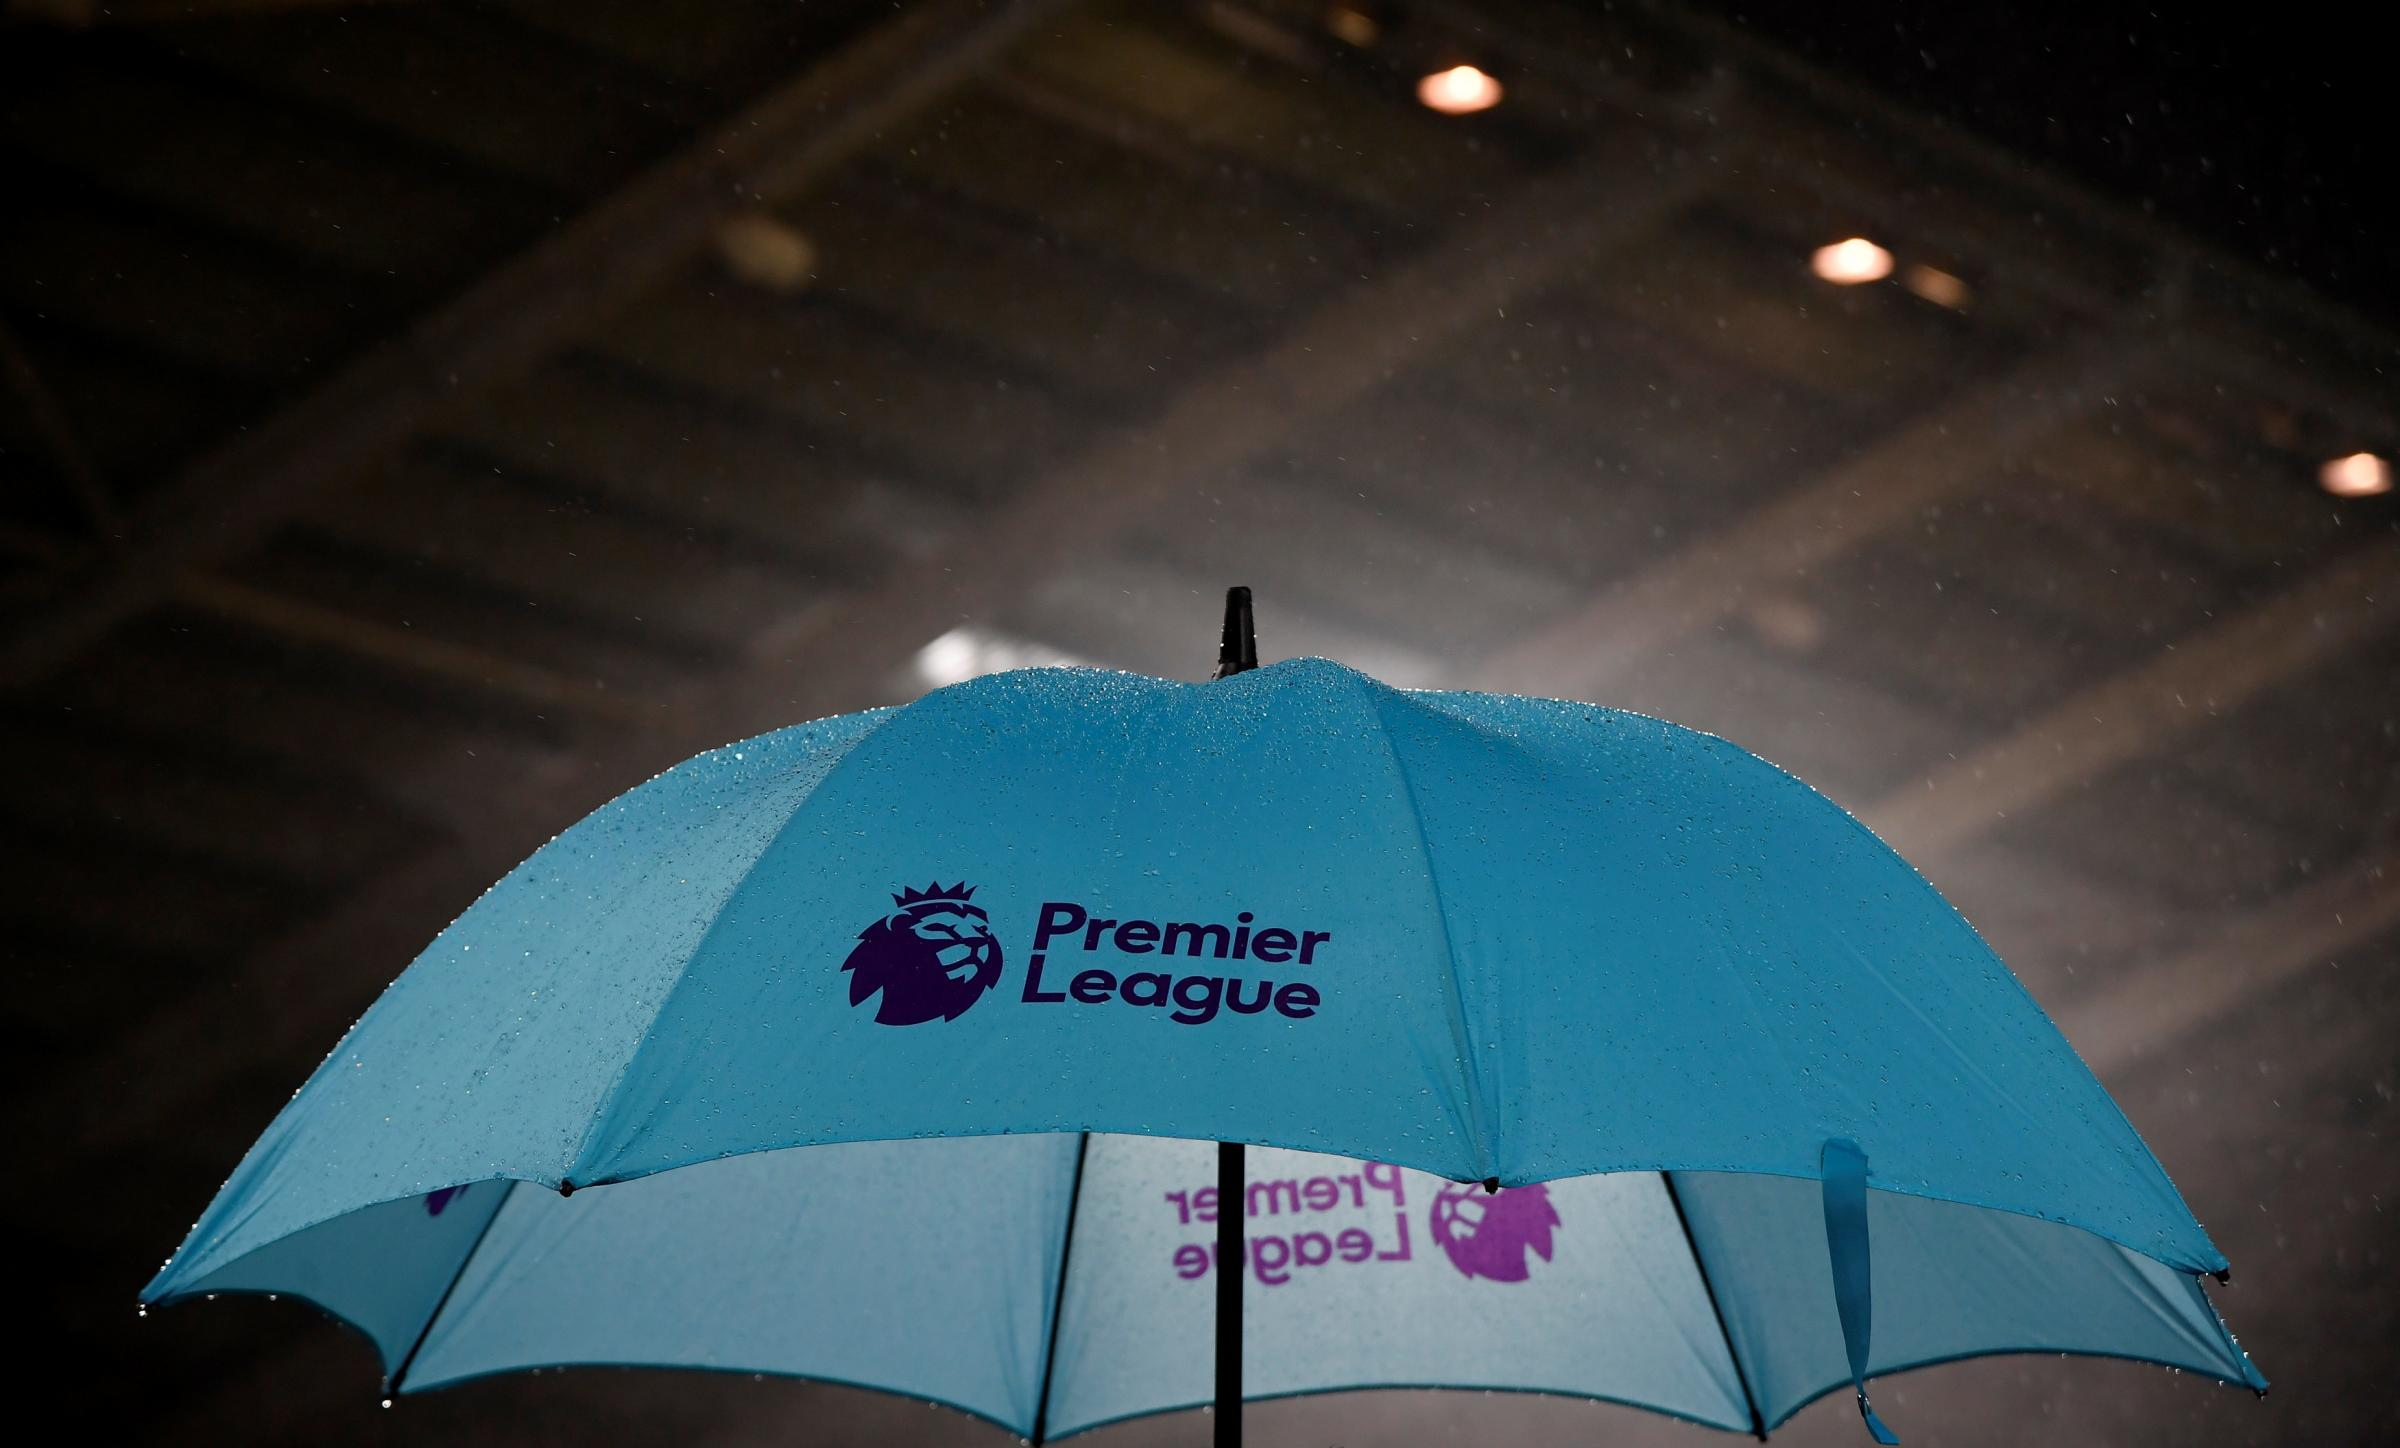 At least six Premier League matches may be staged at neutral grounds